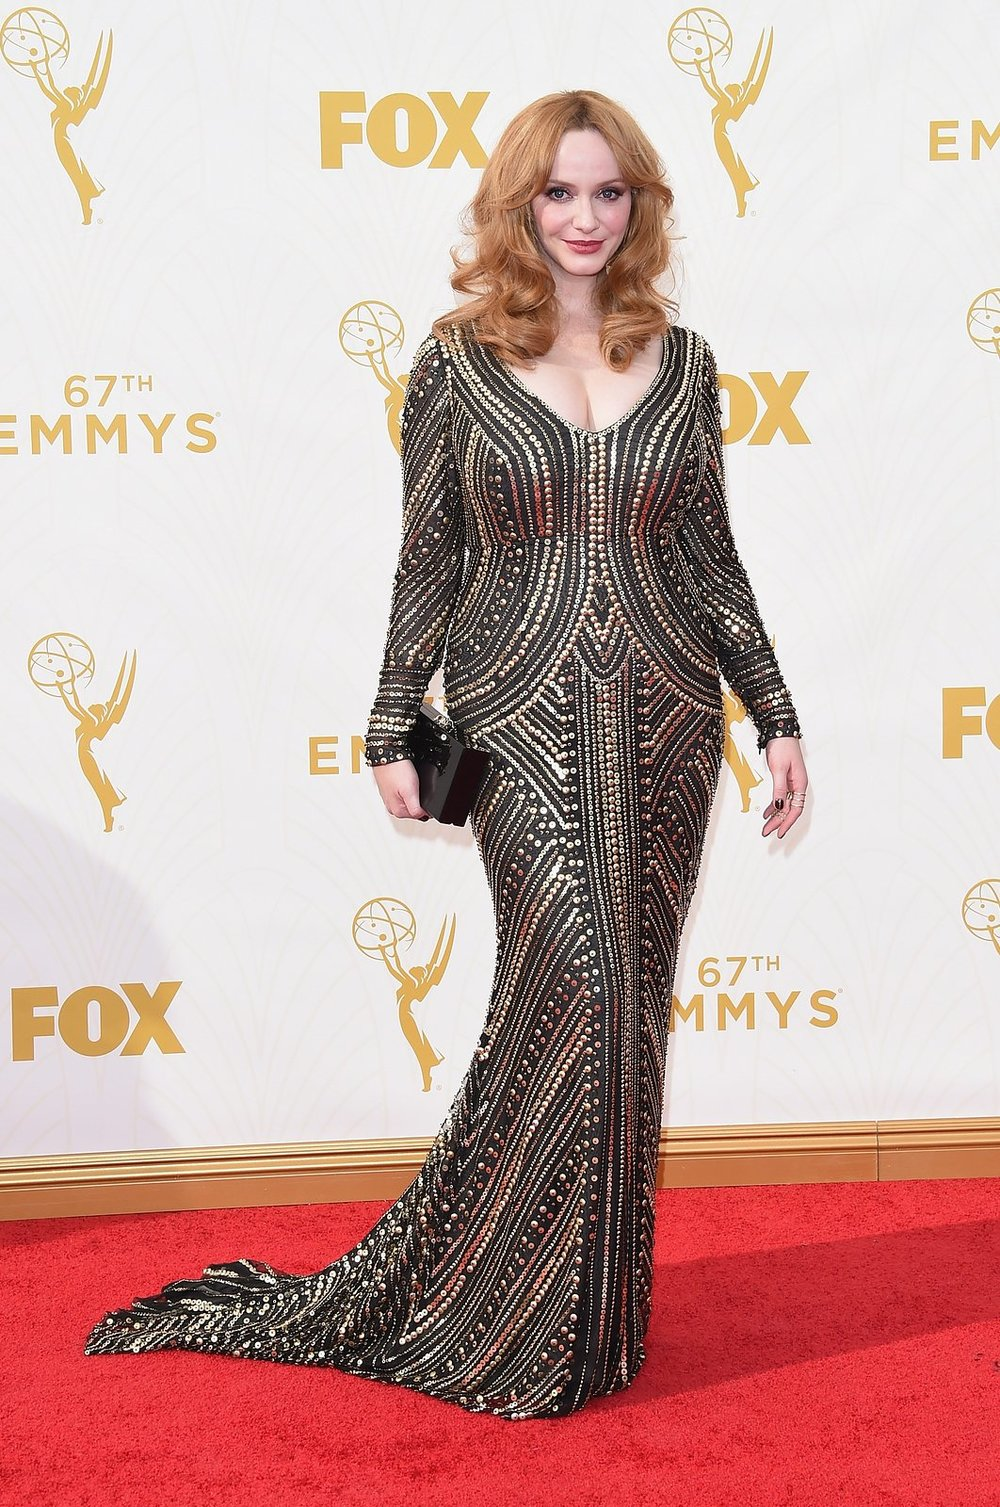 christina-hendricks-emmys-red-carpet-2015.jpg